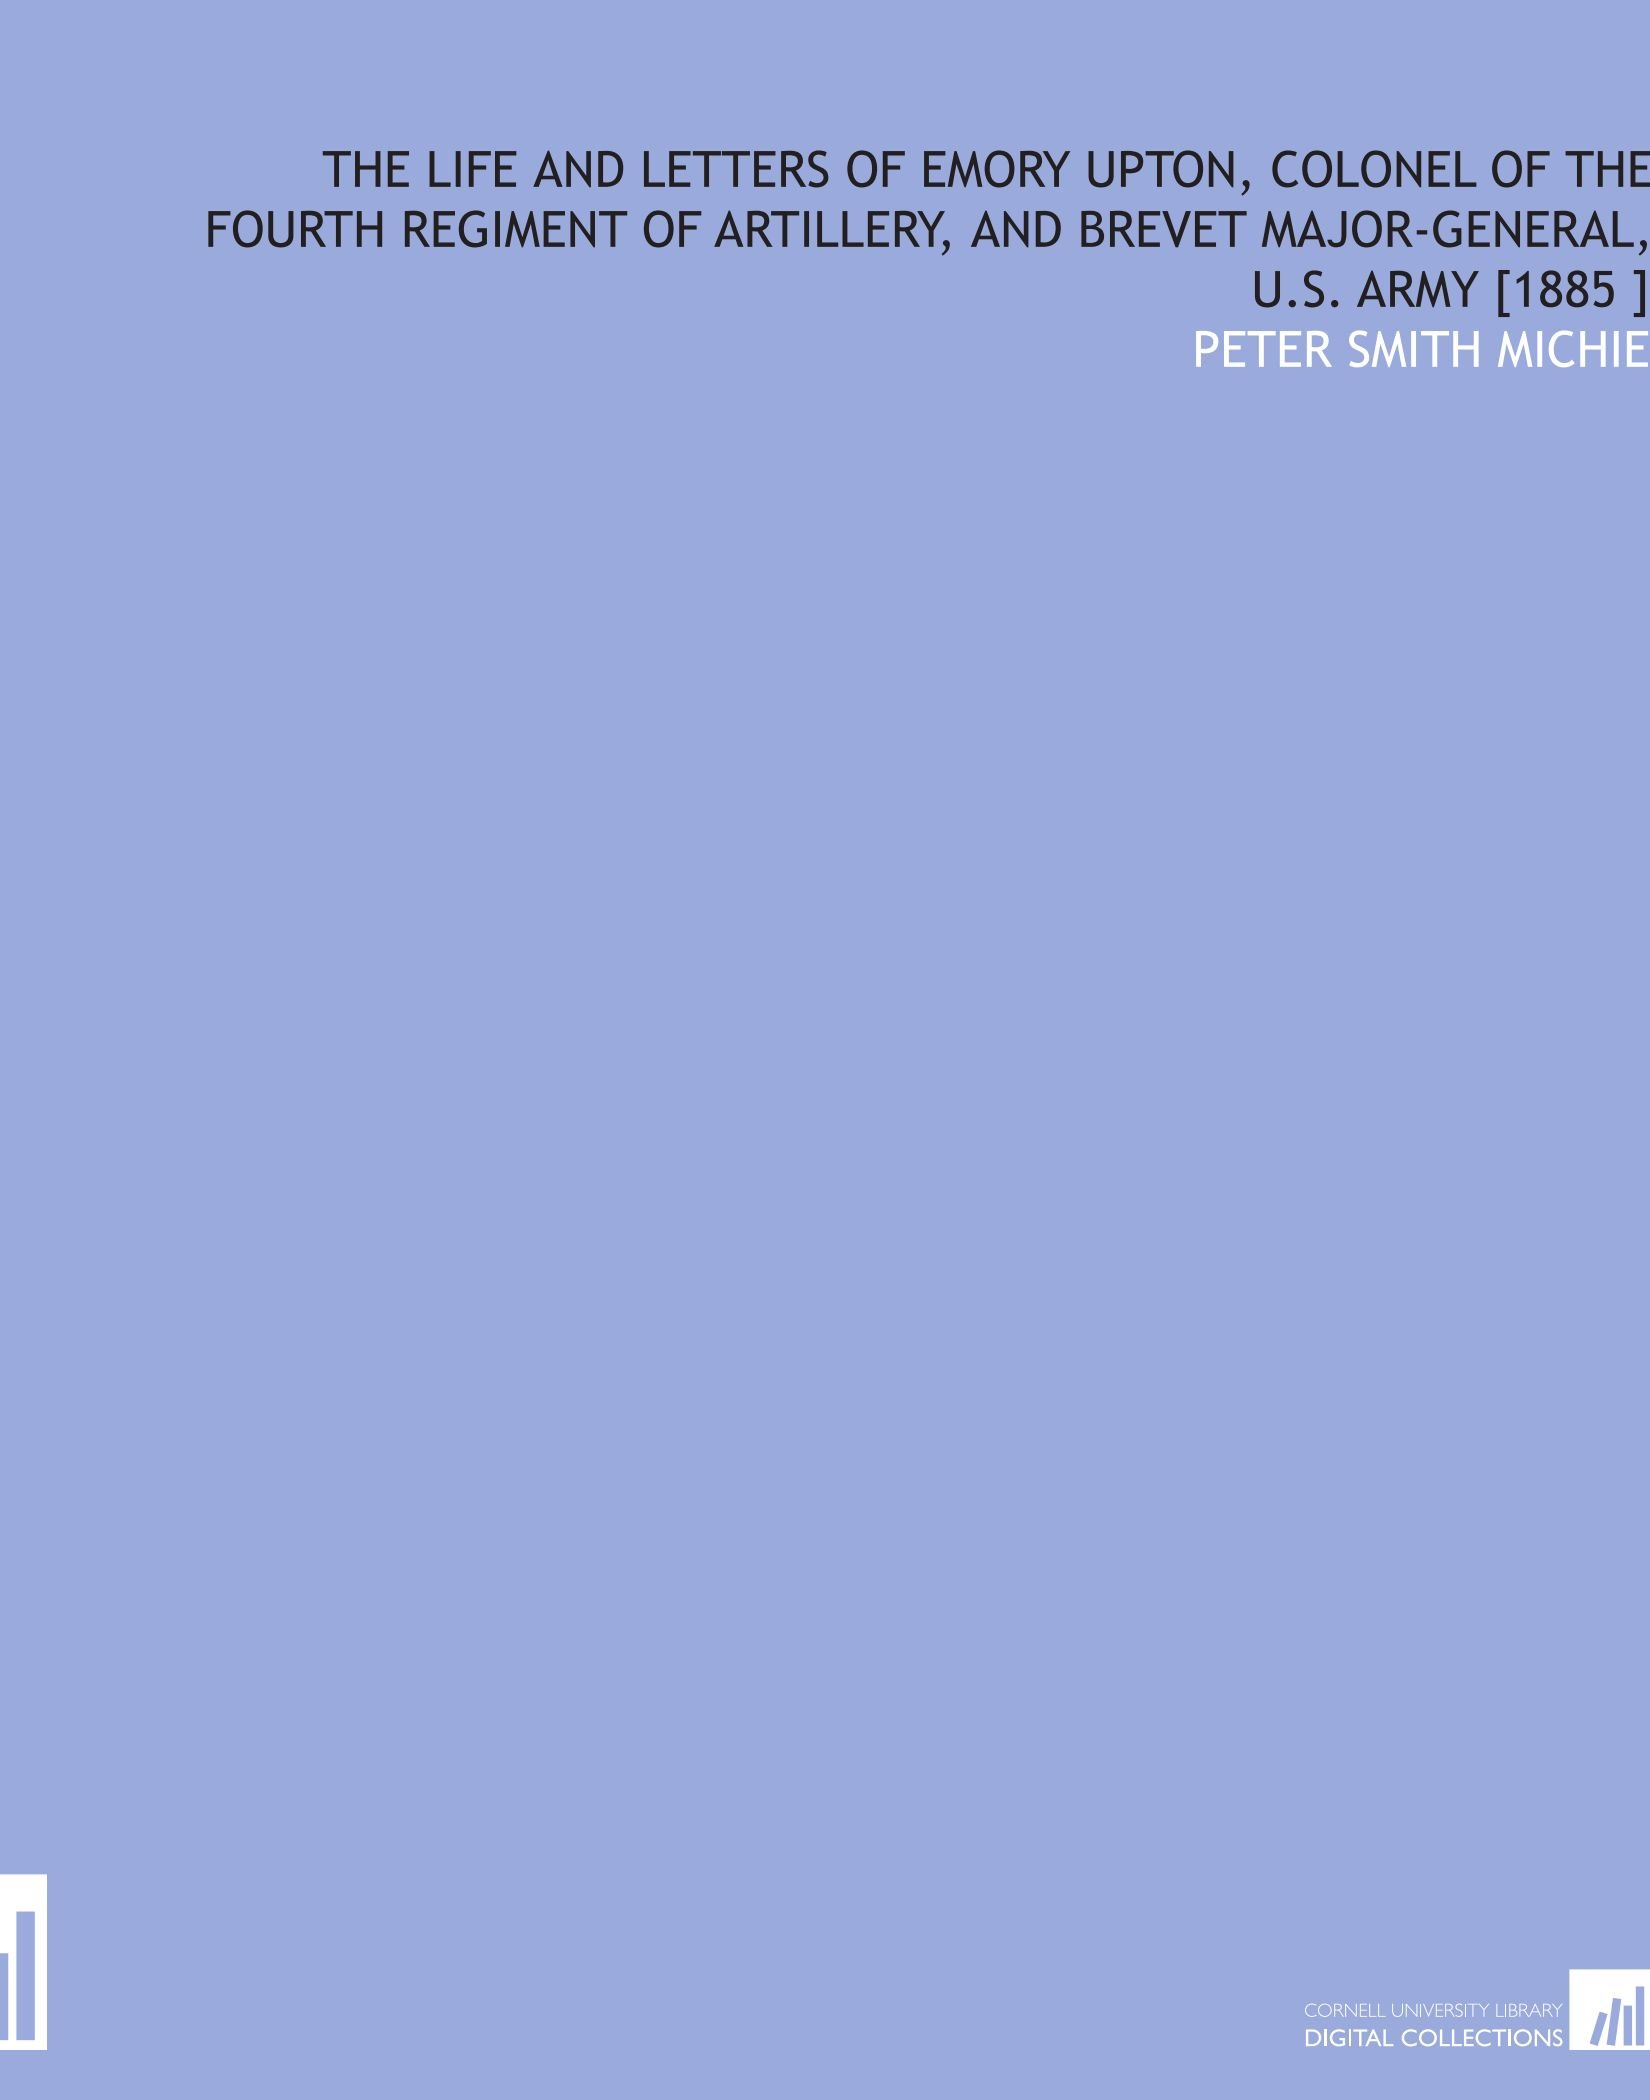 The Life and Letters of Emory Upton, Colonel of the Fourth Regiment of Artillery, and Brevet Major-General, U.S. Army [1885 ] PDF